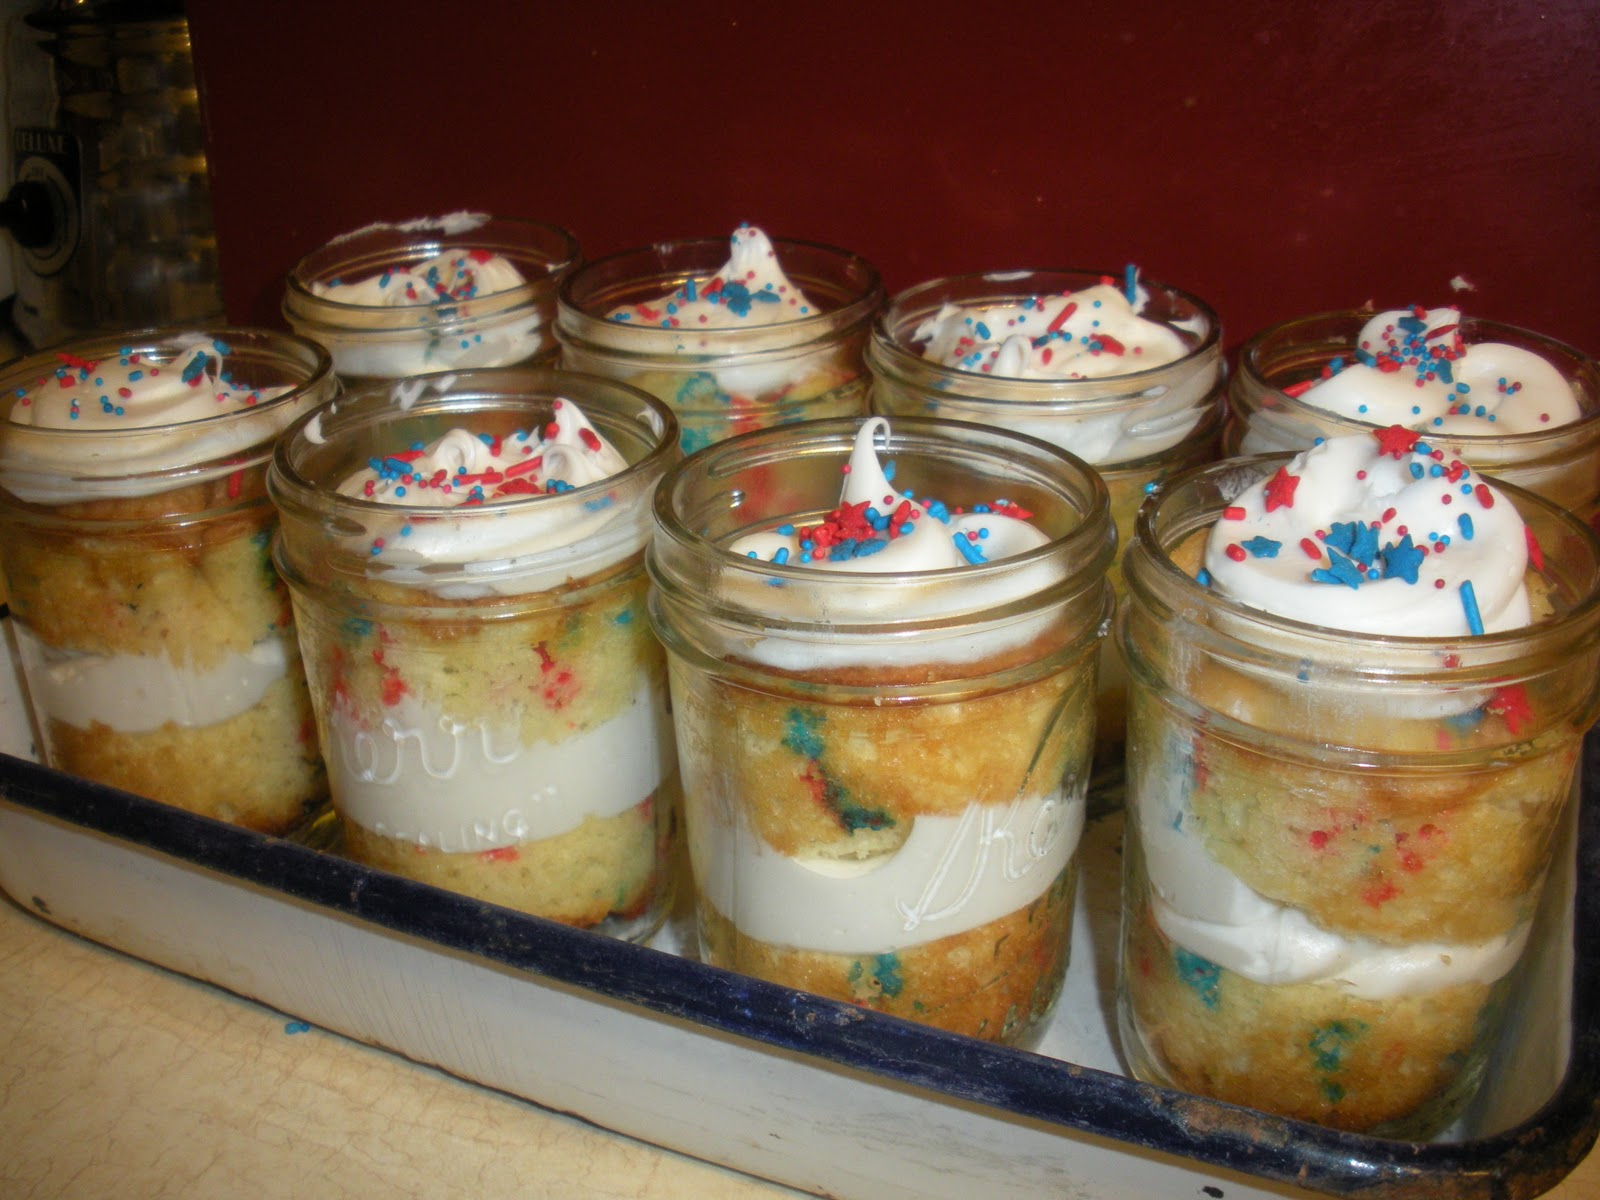 The American Homemaker Mason Jar Cakes